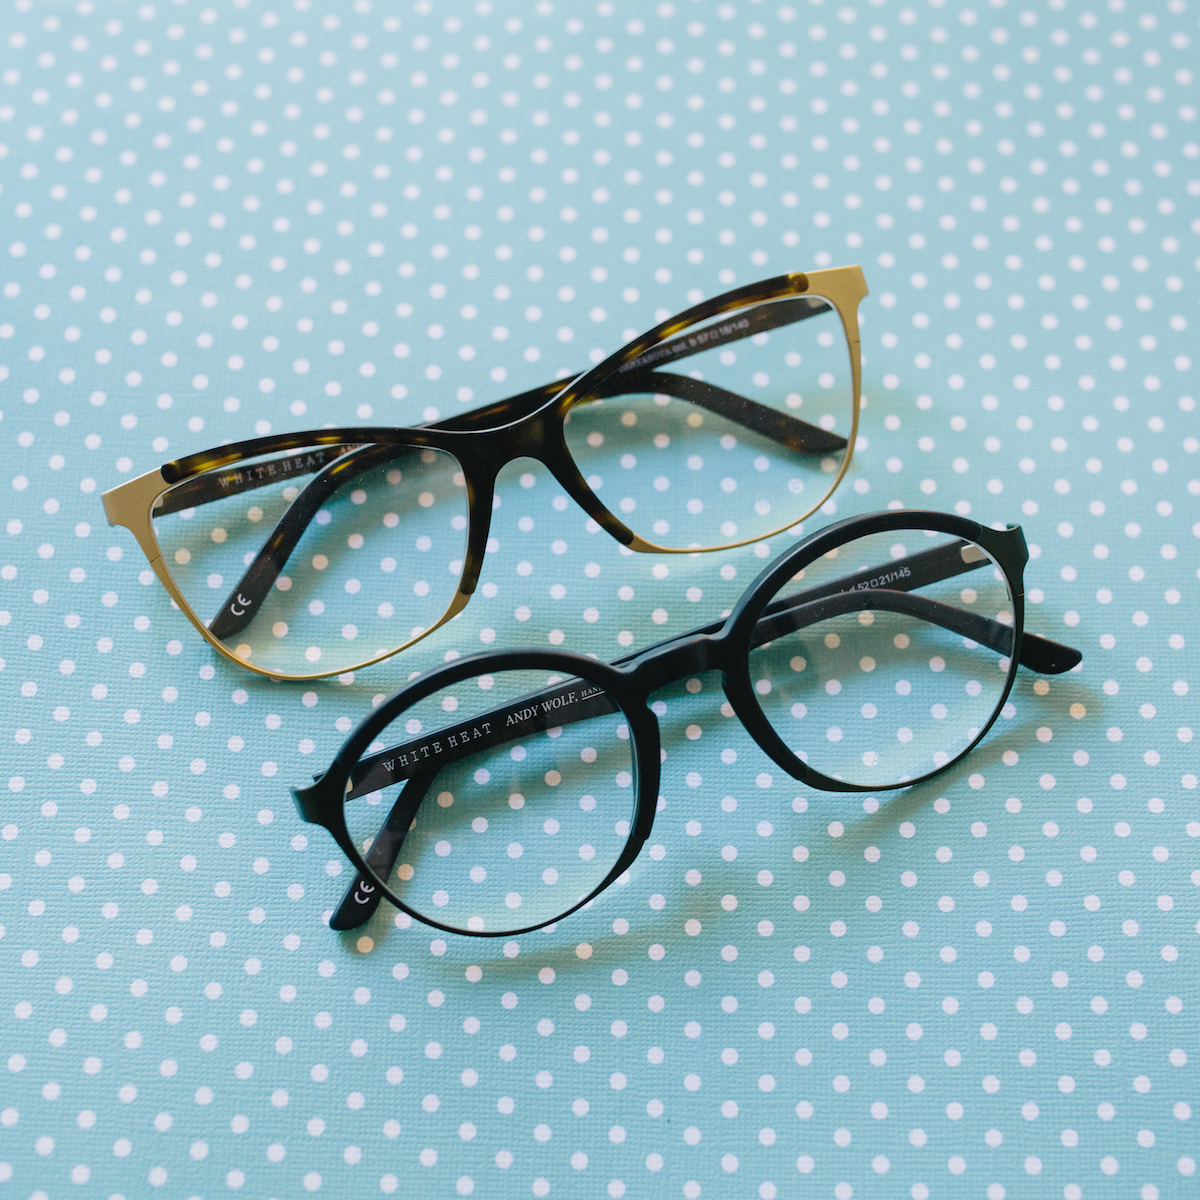 Look East carries Andy Wolf frames